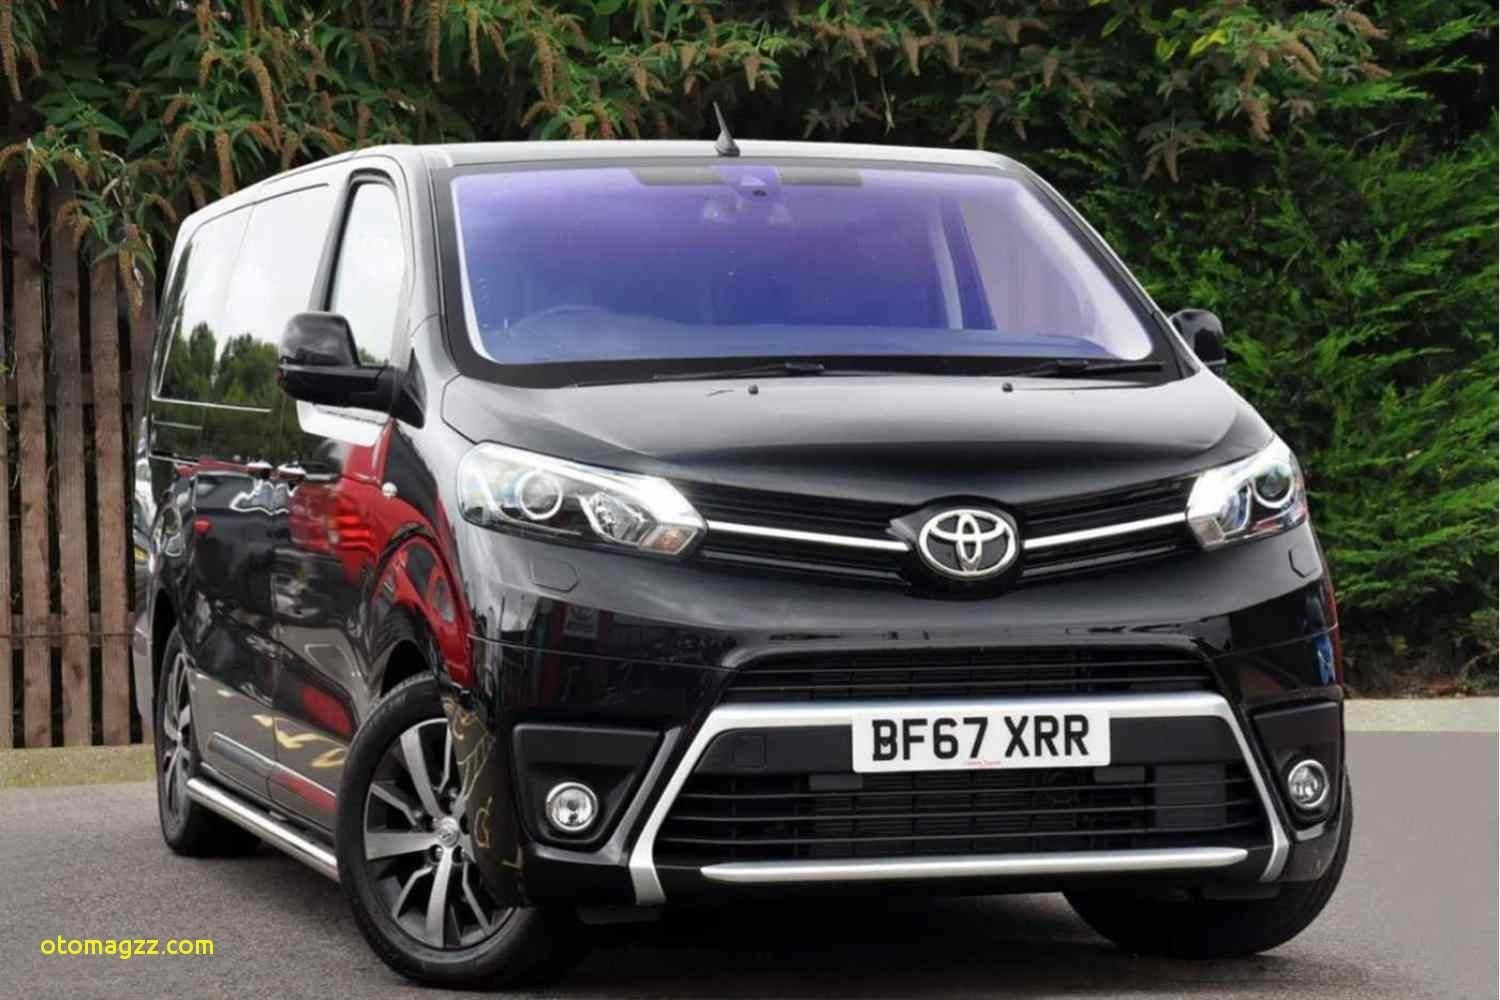 72 A 2020 Toyota Innova Price and Review